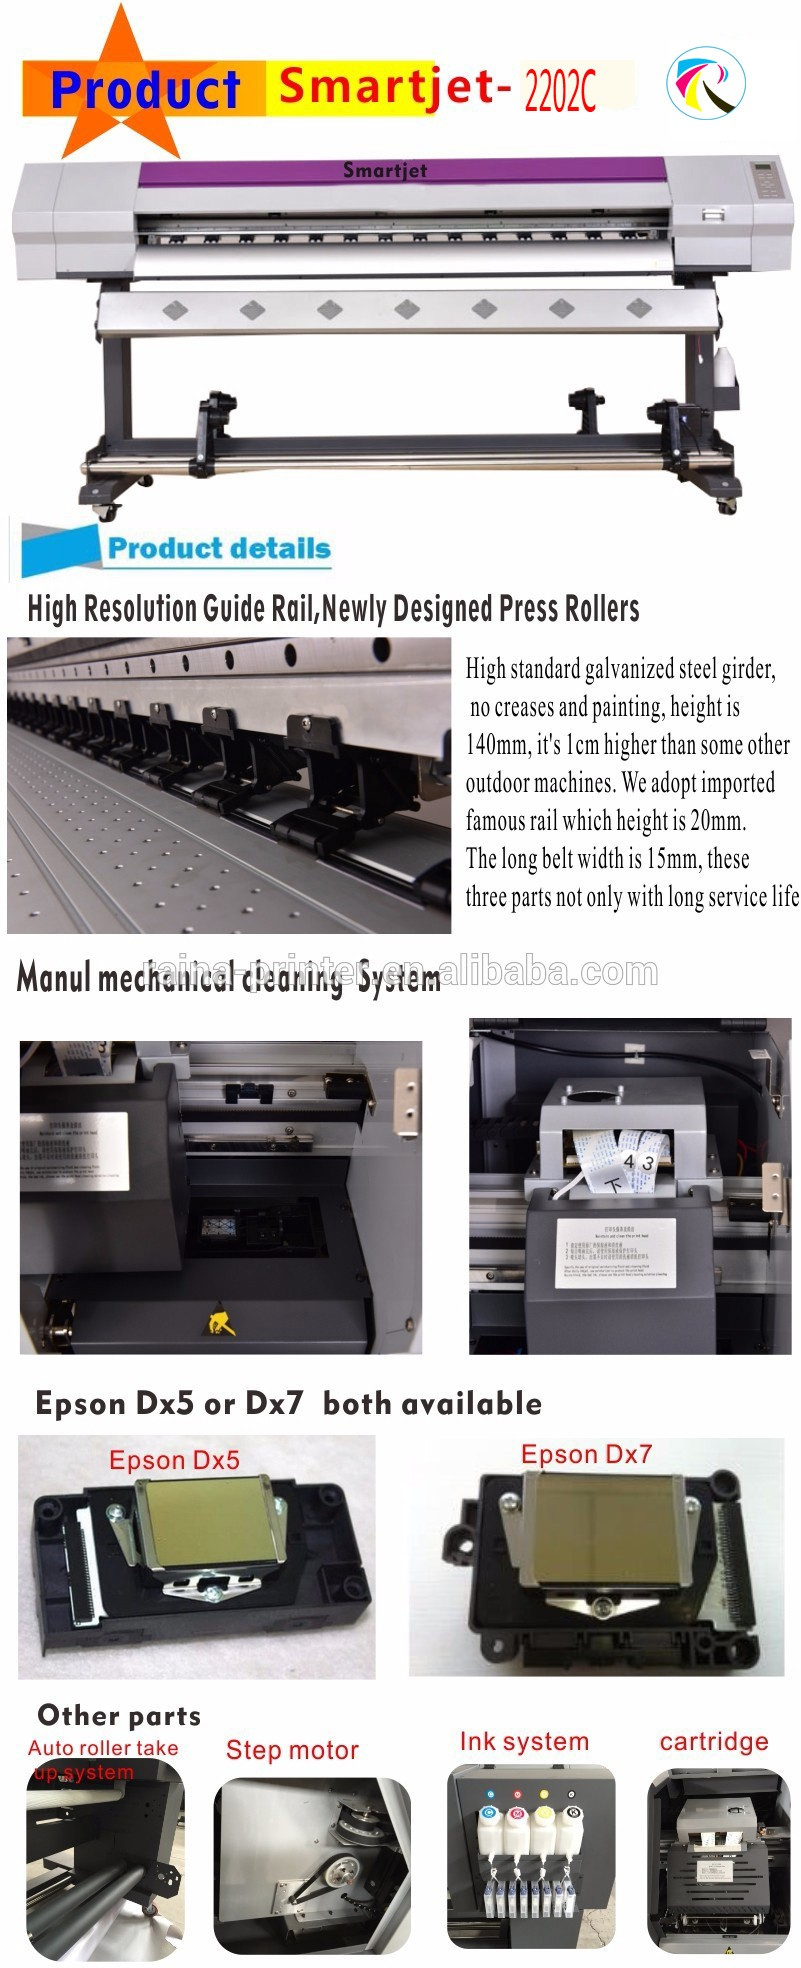 2.2m Printer Cutter vinyl cutter china roland indoor/outdoor plotter cutter